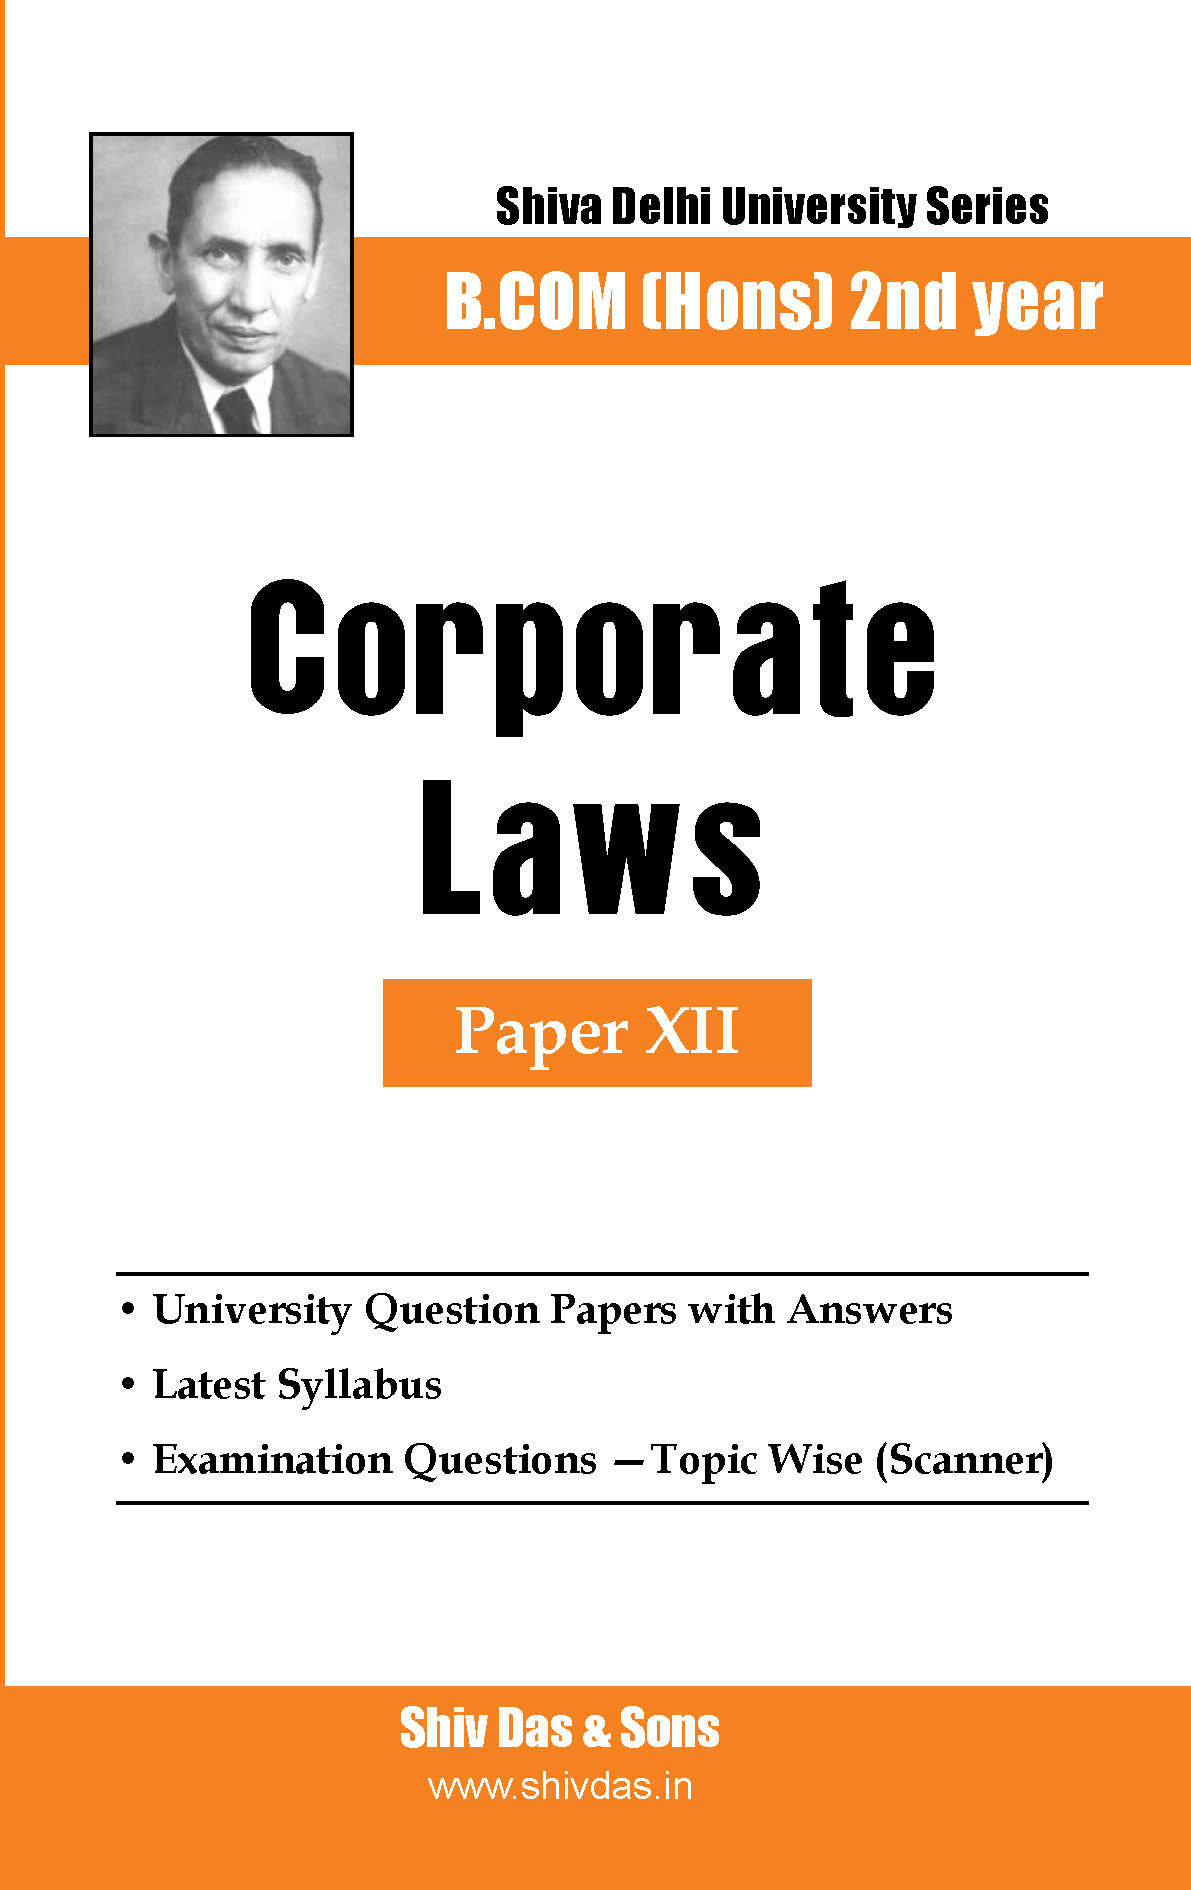 B.Com Hons-SOL/External-2nd Year-Corporate Laws-Shiv Das-Delhi University Series